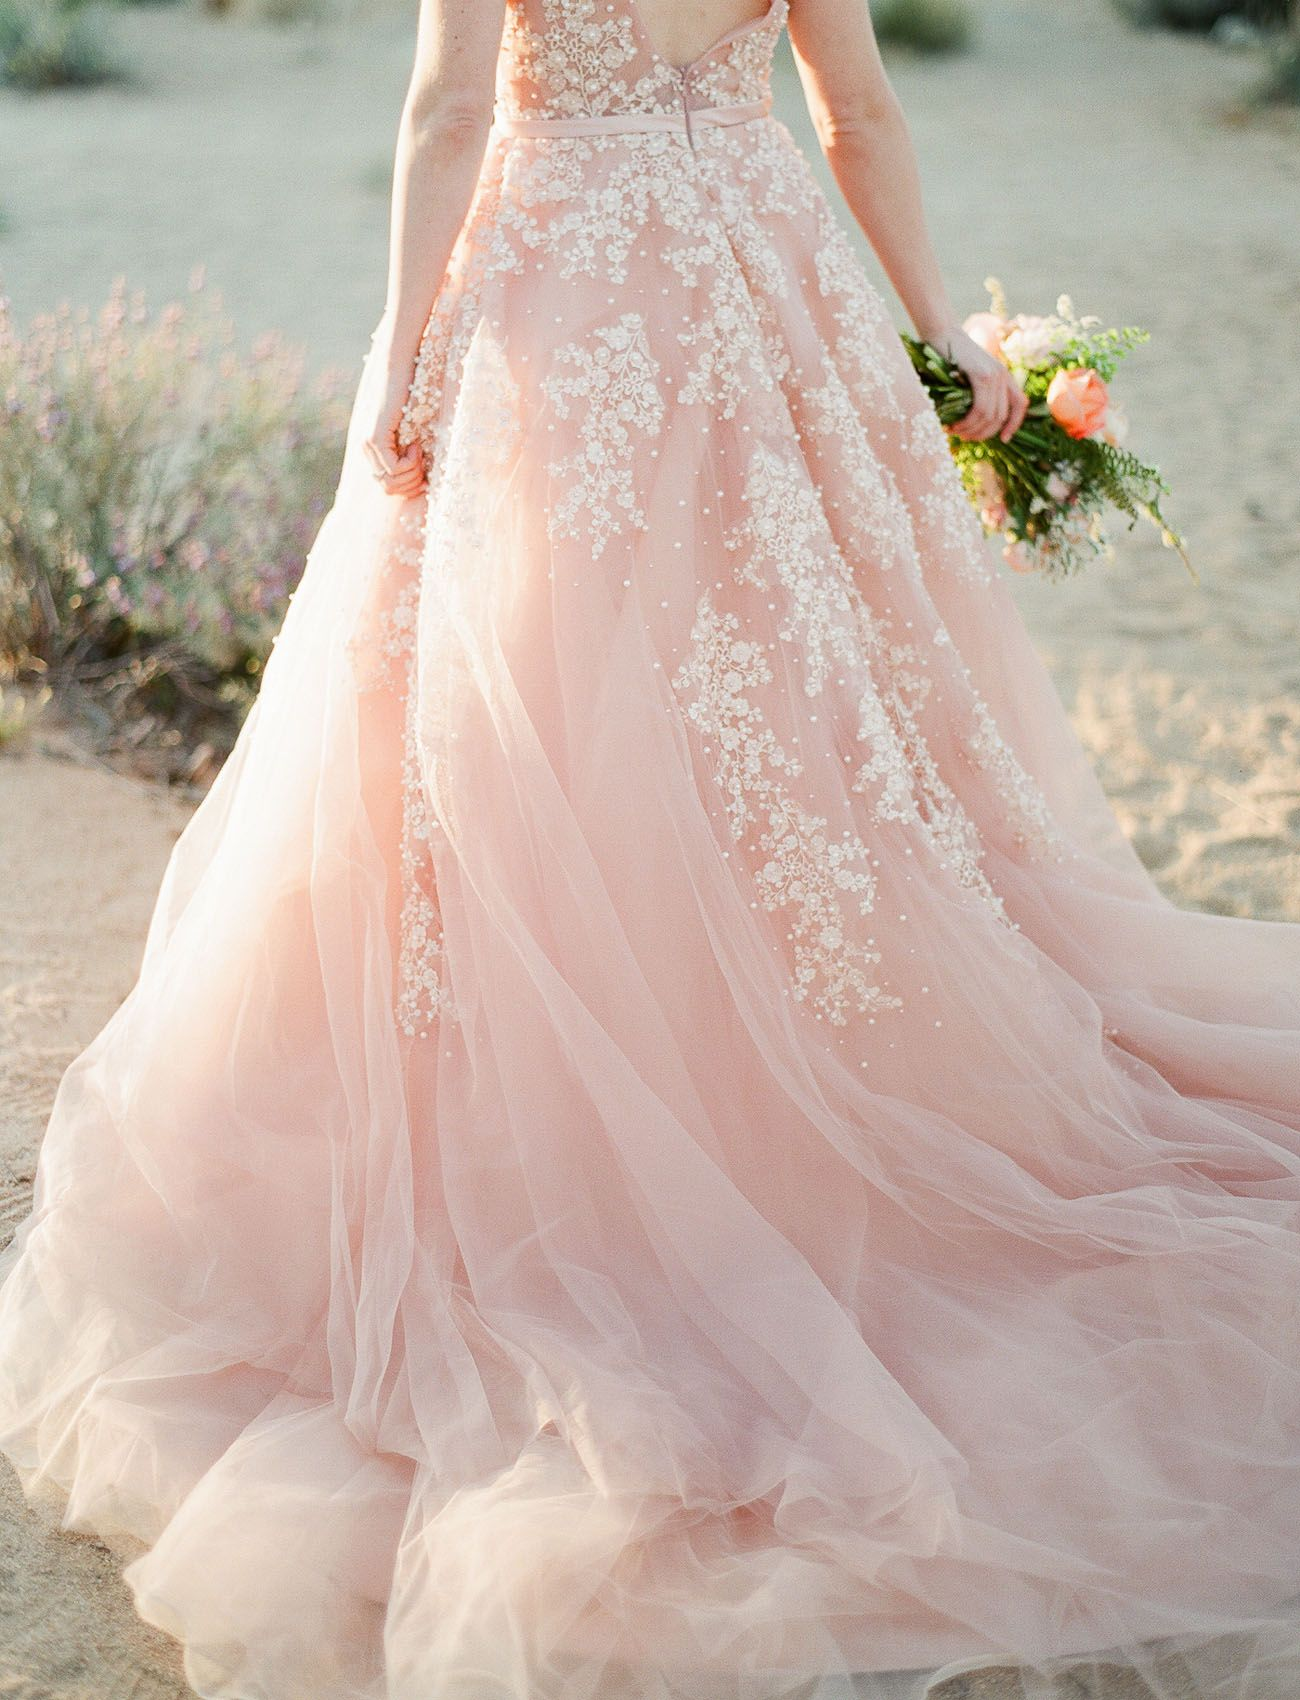 A Dreamy Pink Wedding Dress captured in Joshua Tree | Vestidos de ...